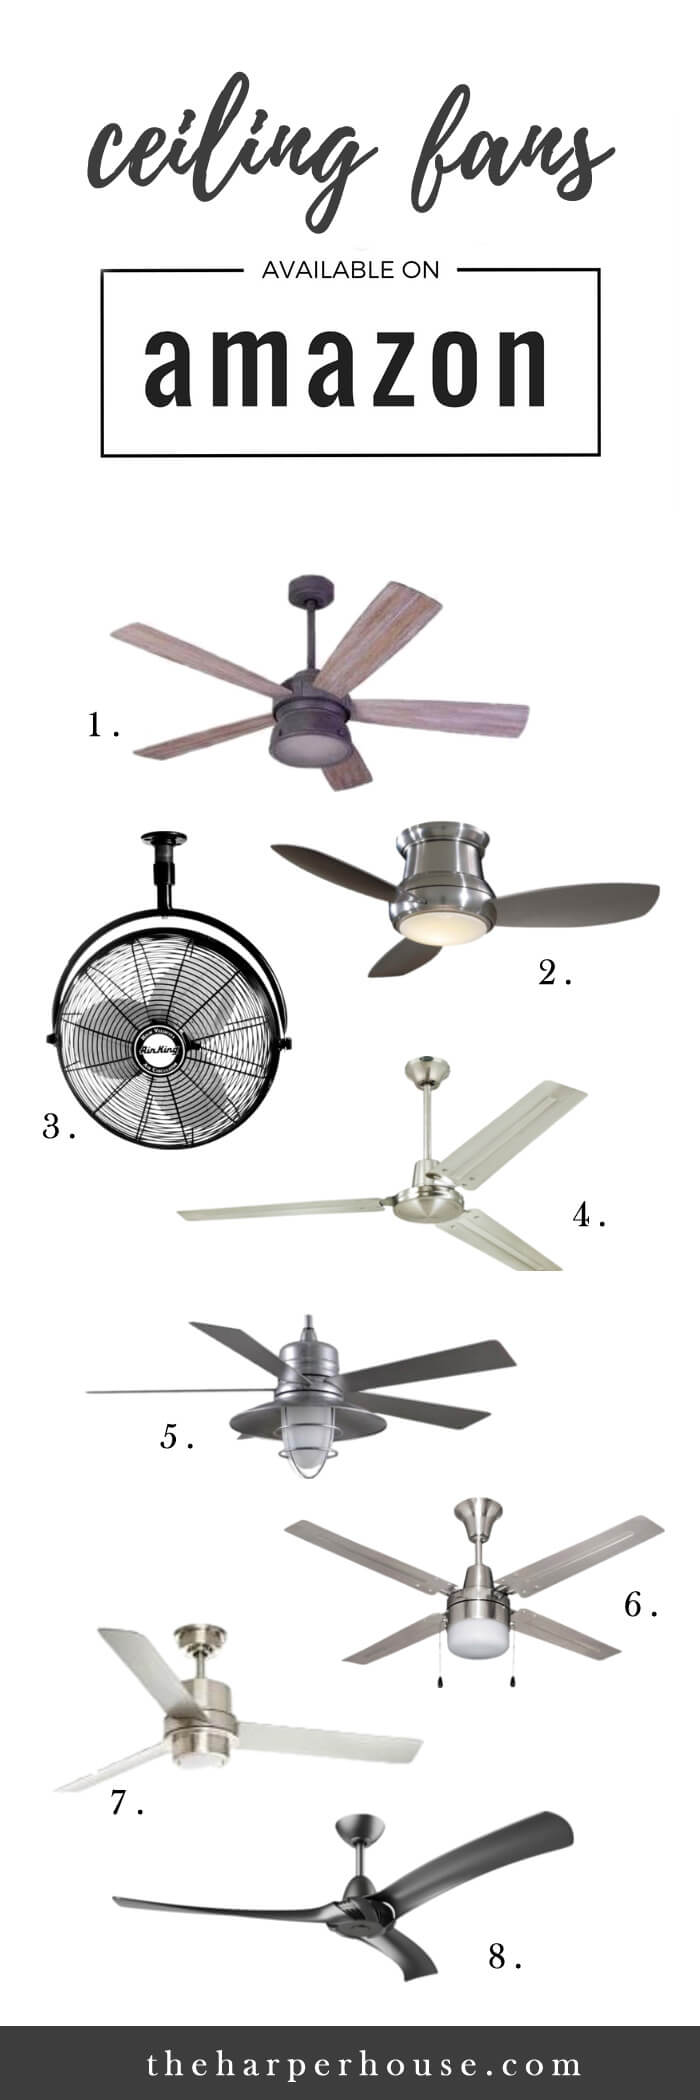 Farmhouse ceiling fans find them on amazon the harper house give your room an instant face lift with these great looking farmhouse ceiling fans available on aloadofball